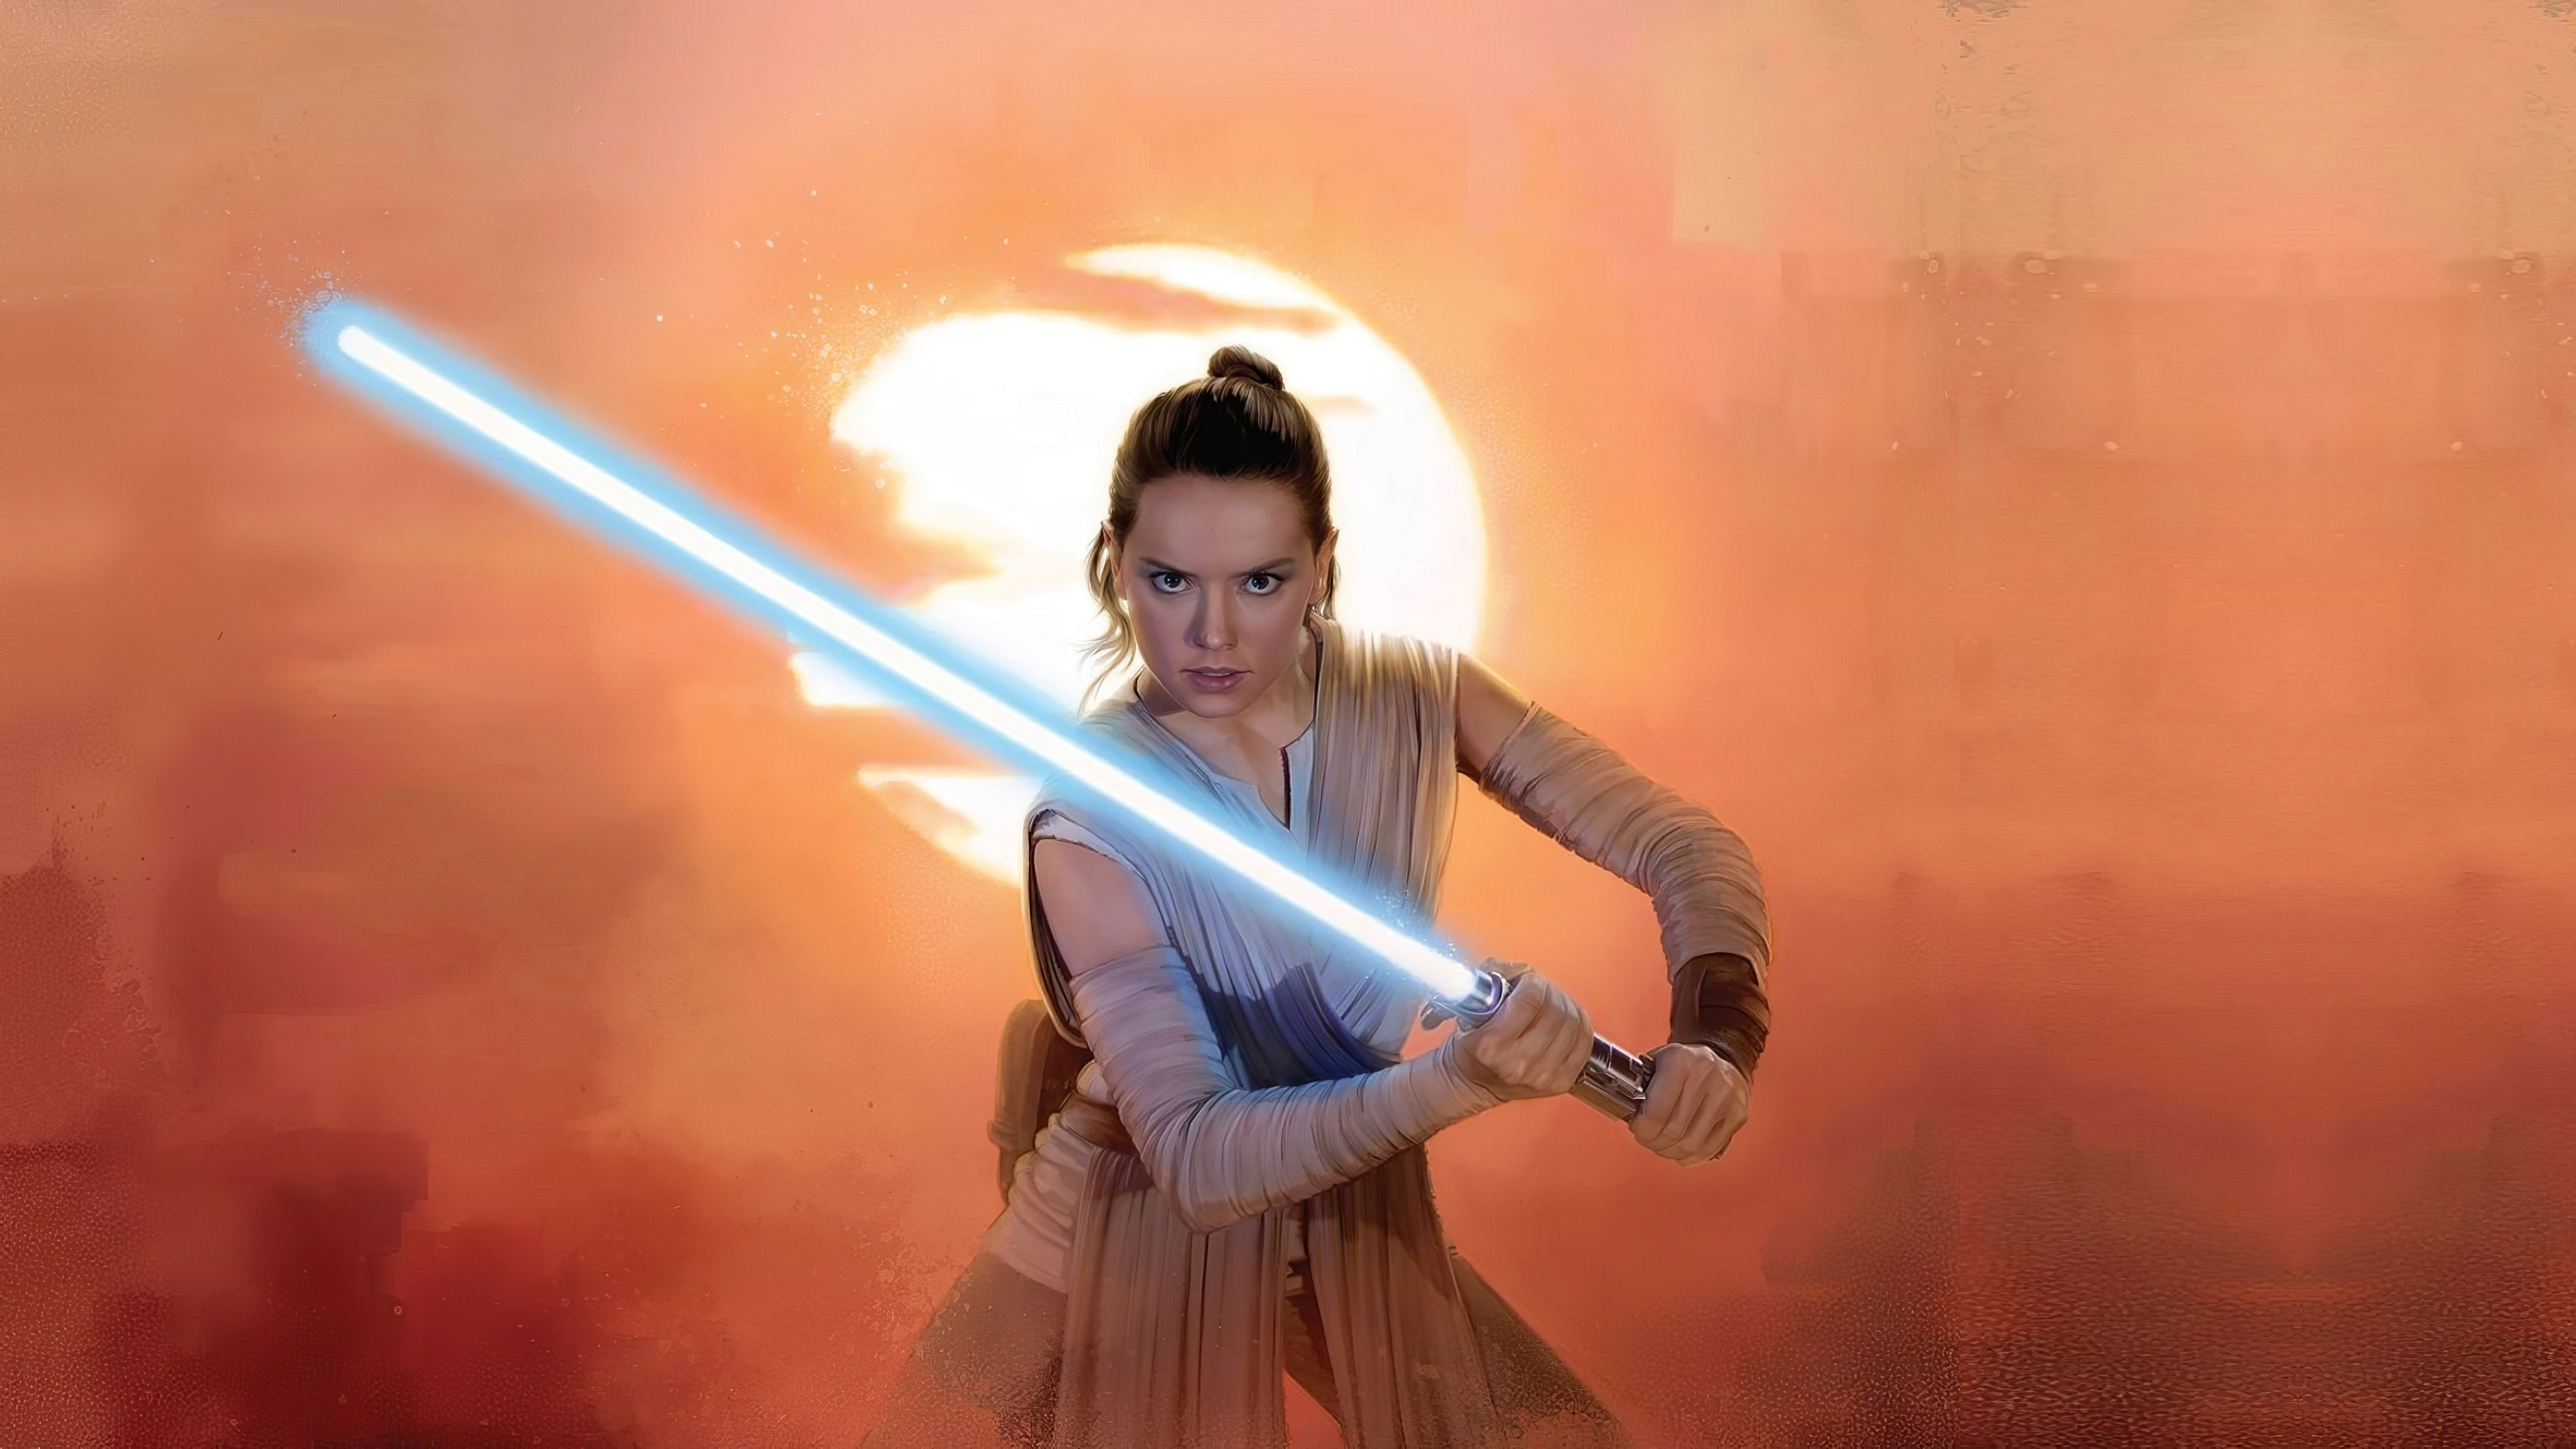 Rey With Lightsaver From Star Wars The Rise Of The Skywalker Wallpaper 4k Ultra Hd Id 4363